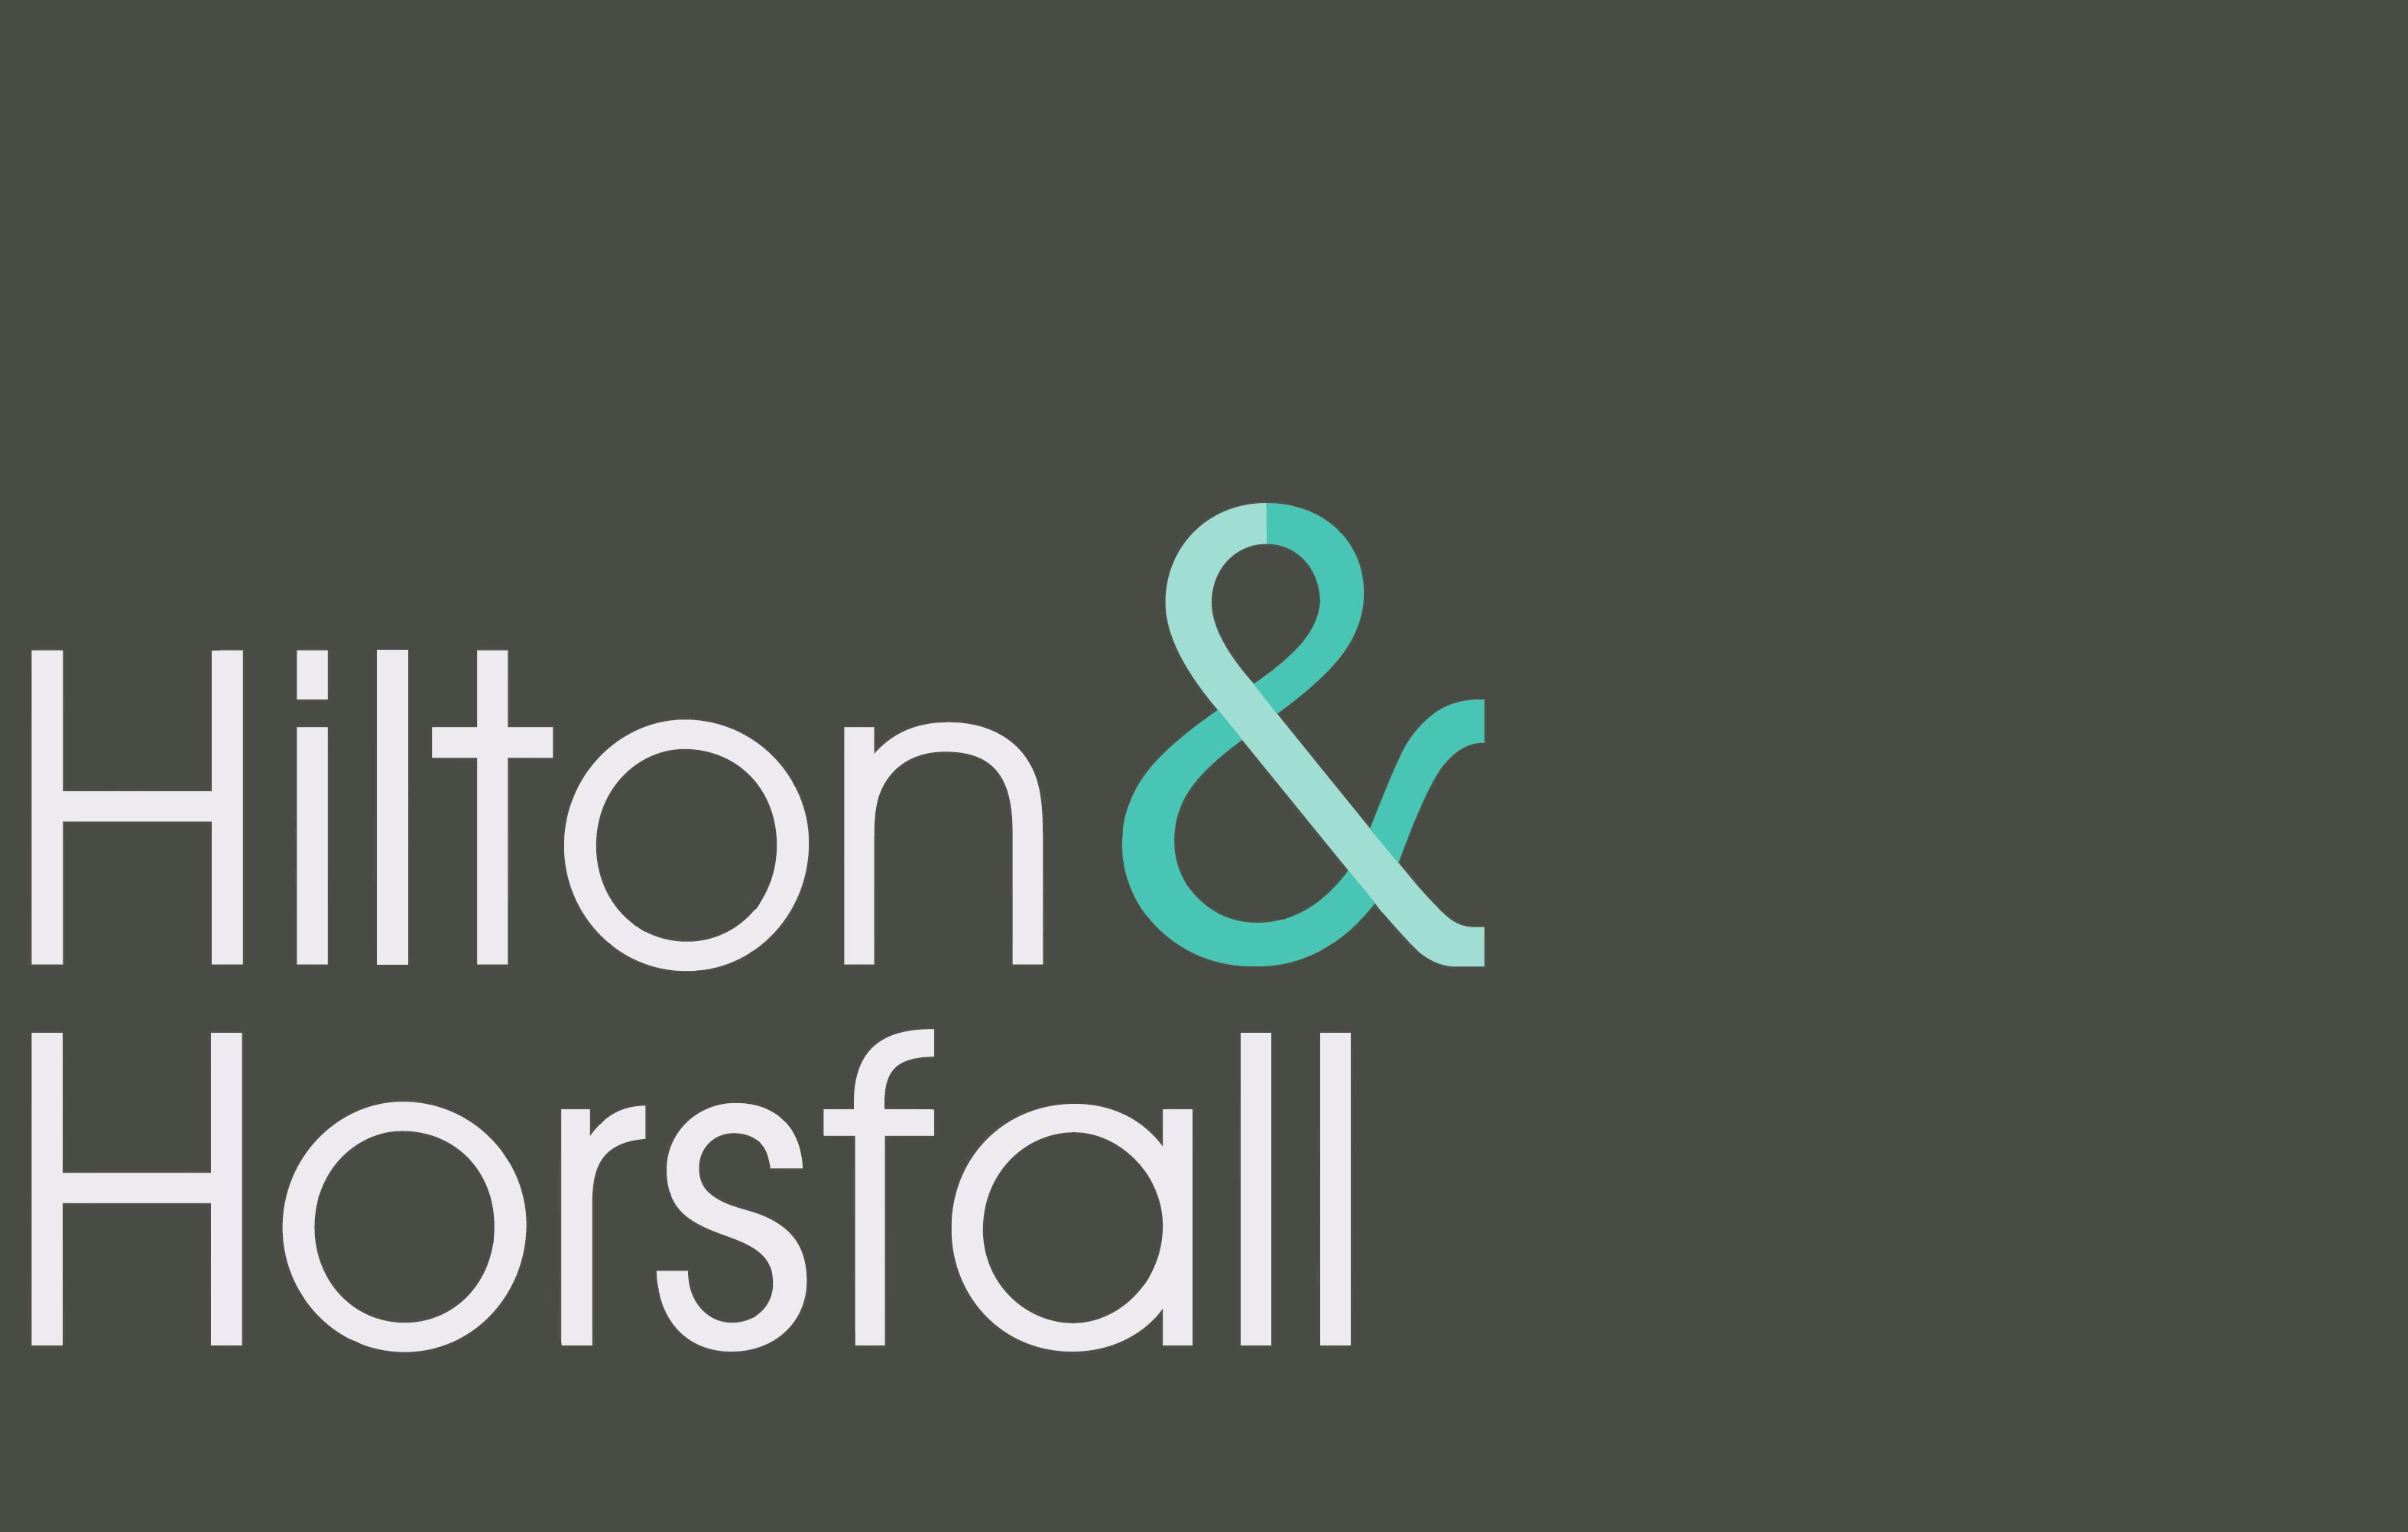 Hilton and Horsfall